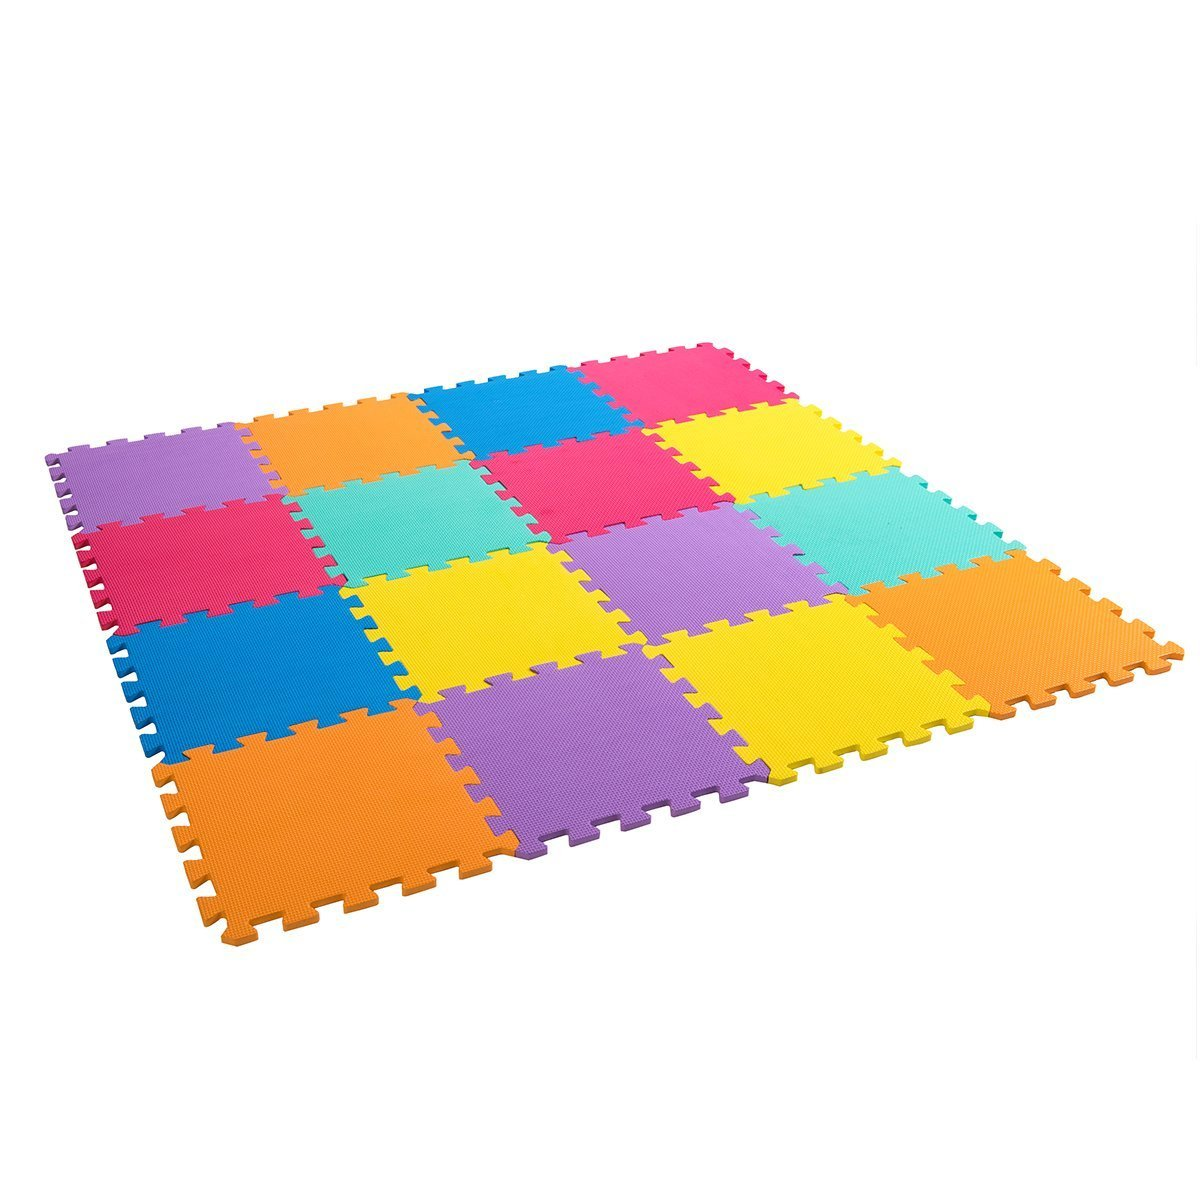 Zoeshare Puzzle Play Mat for Kids Foam Mat,16 Piece, Multi-Color, Each Tile 12''x 12''x 0.4''